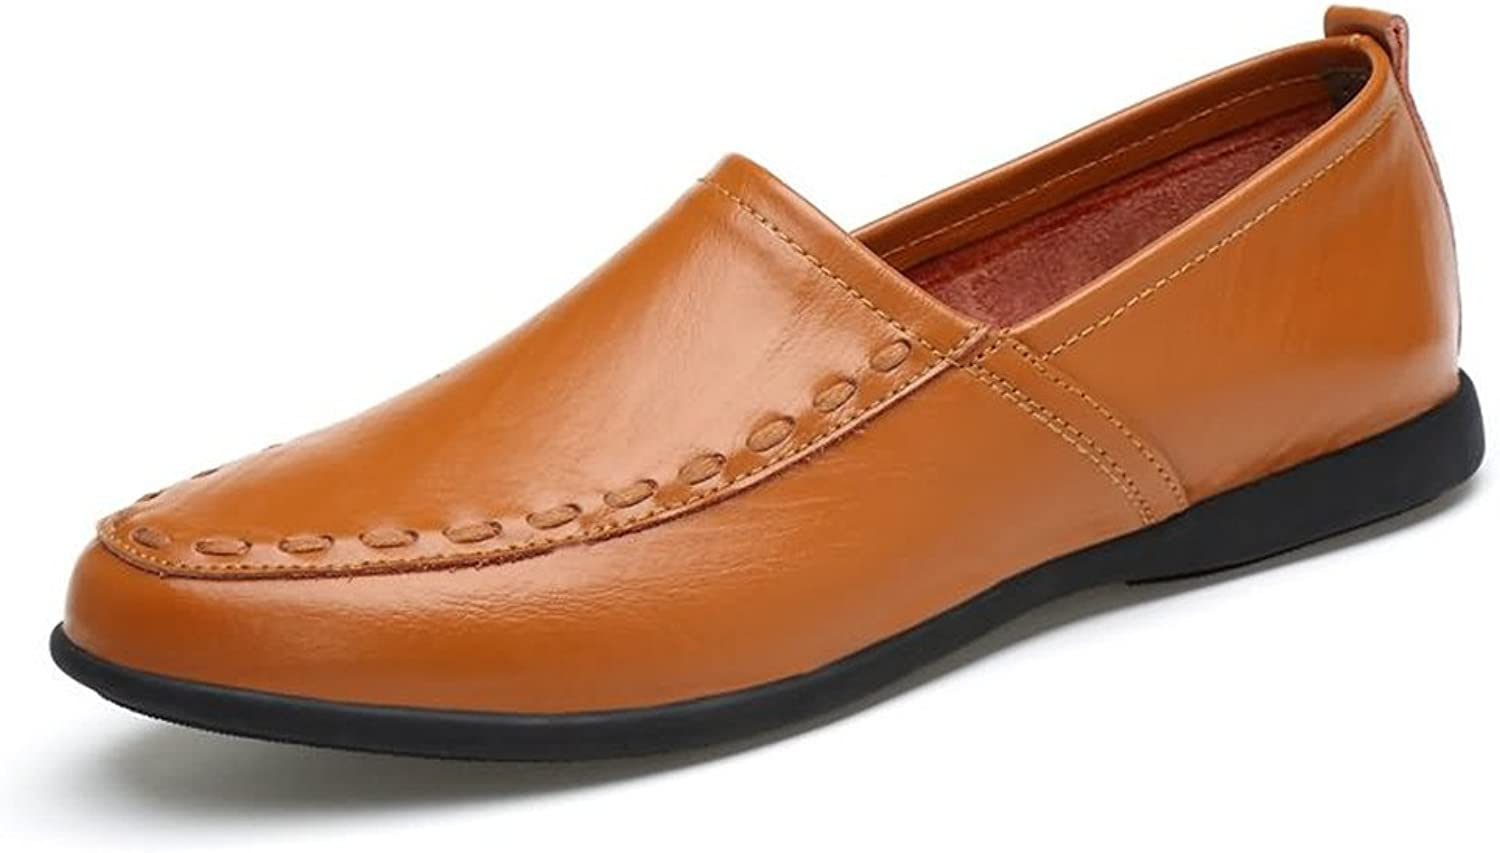 Men Casual Drive Loafers New Legume shoes Soft Genuine Leather Breathable Low Top Large Size Boat Moccasins For Party, Casual Or Even Formal Events (color   gold Yellow, Size   8 UK)